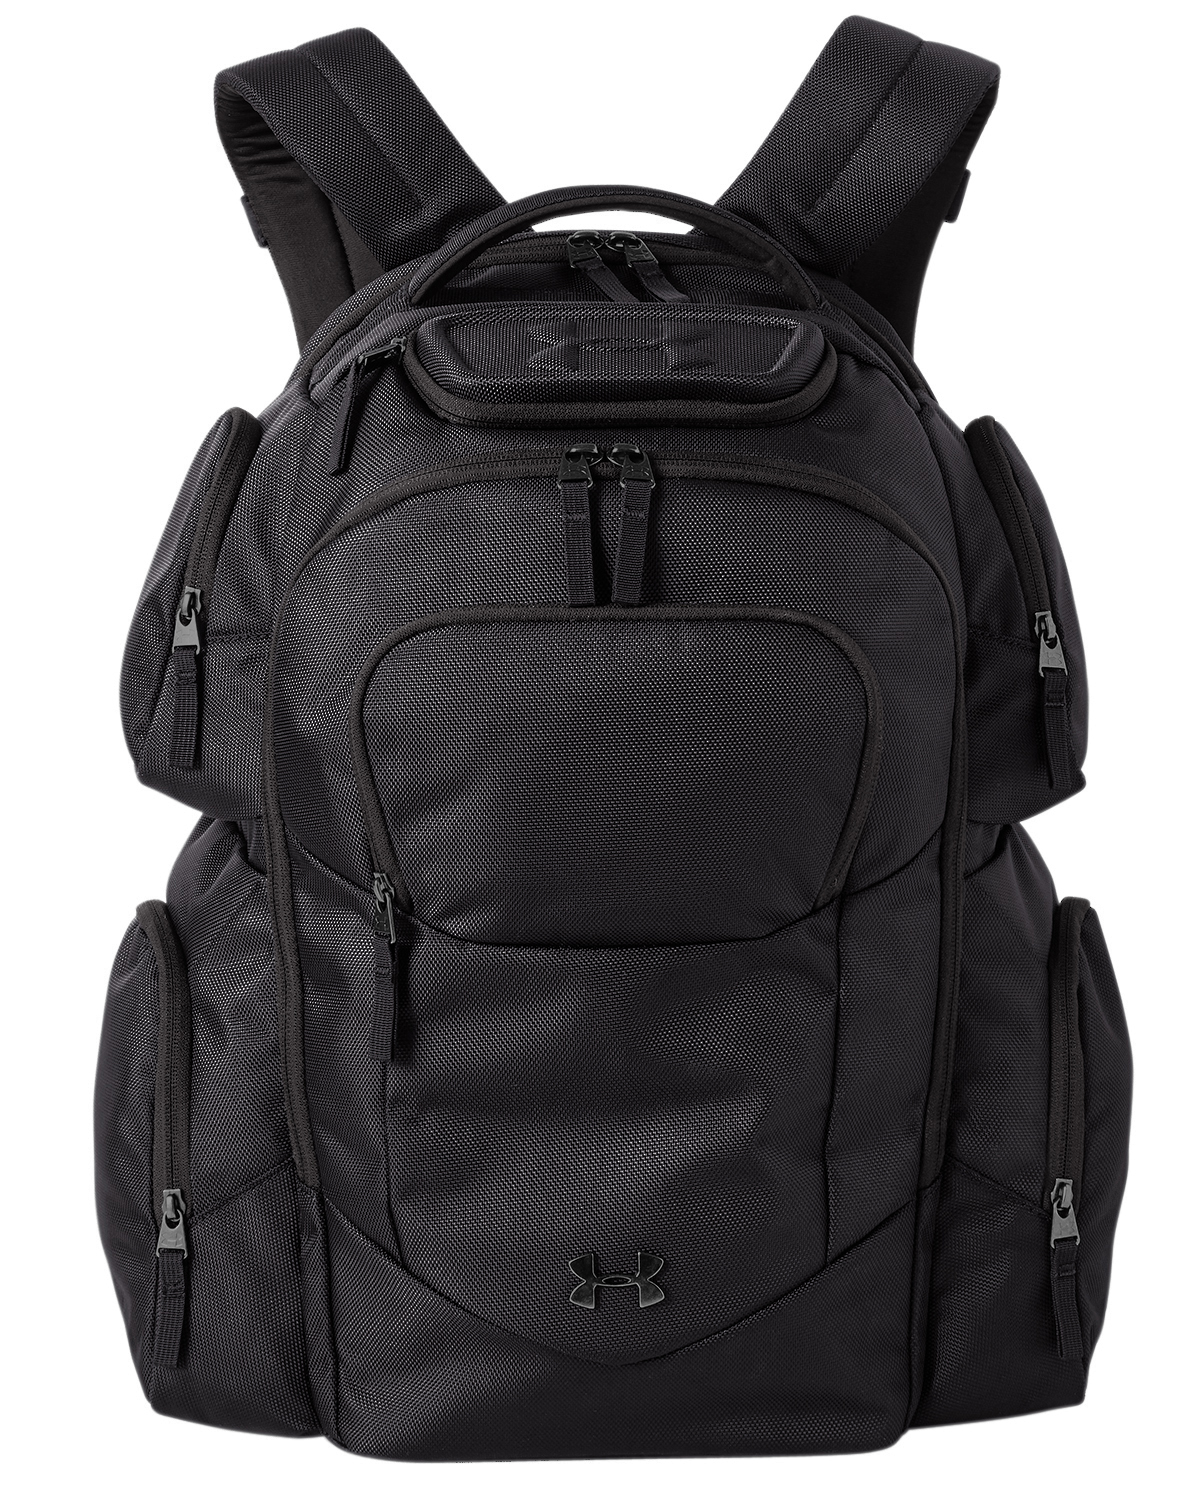 Under Armour Travel Backpack